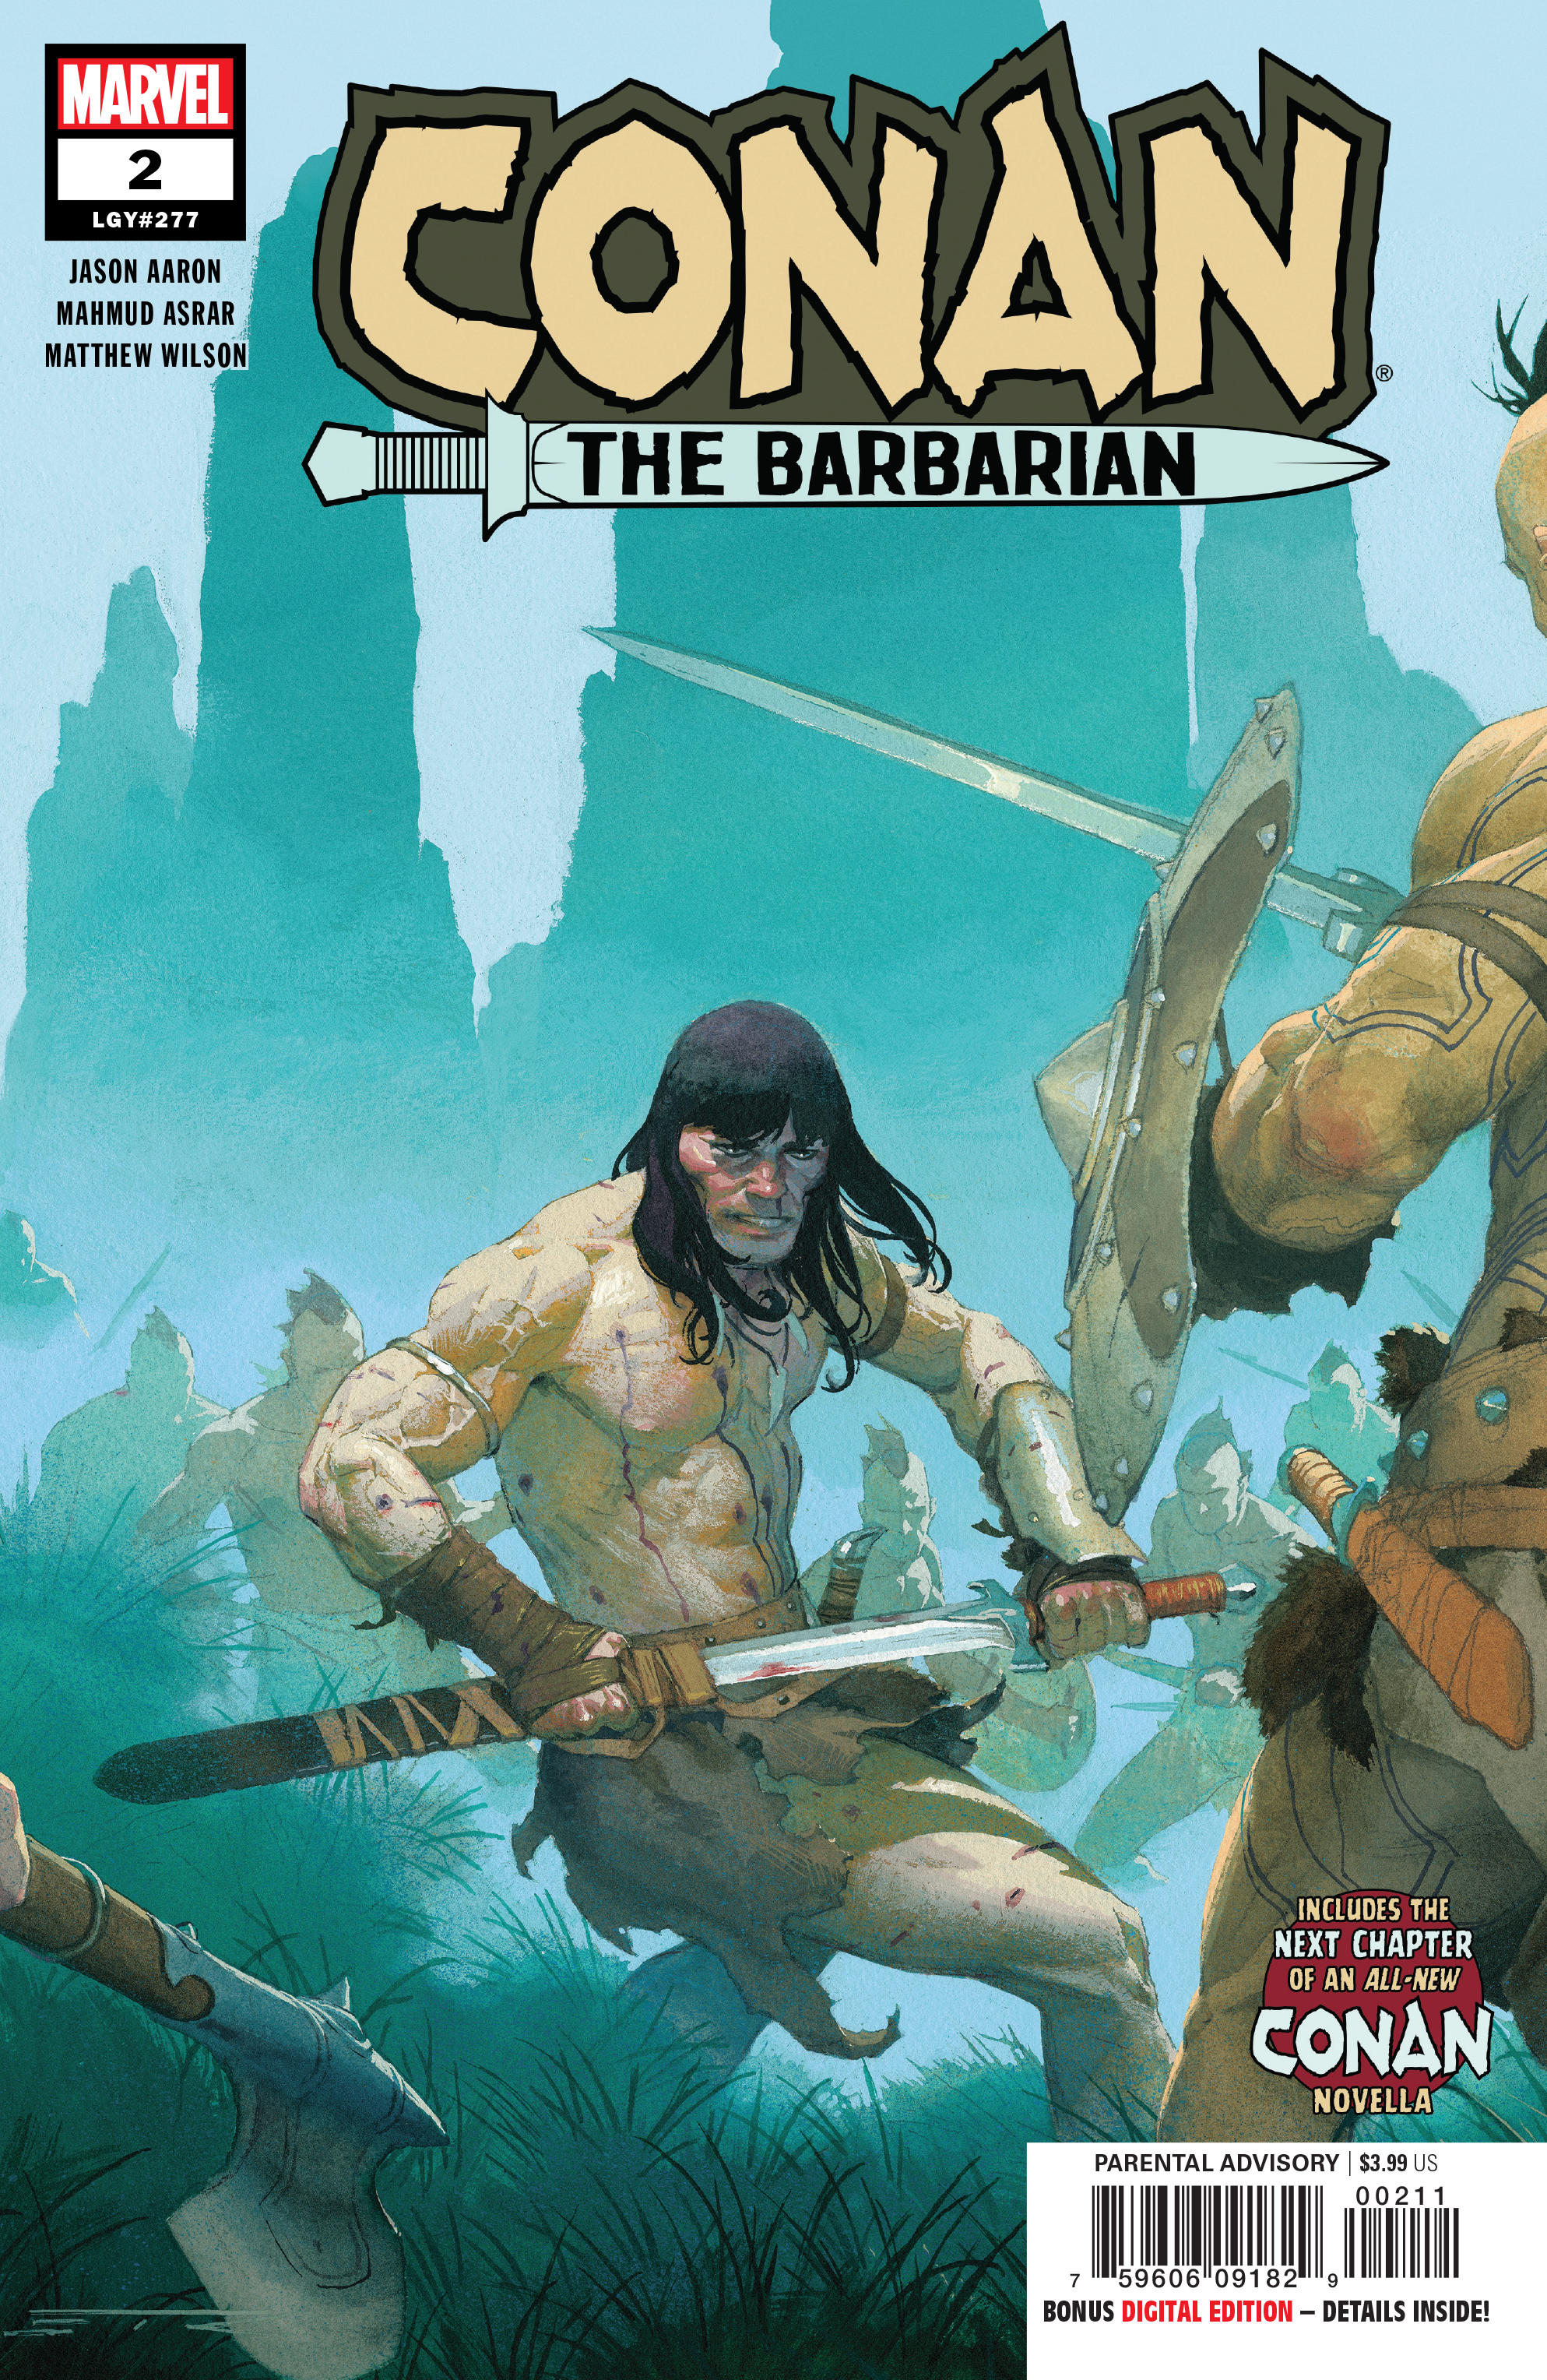 Image result for Marvel Previews Conan The Barbarian #2 2019